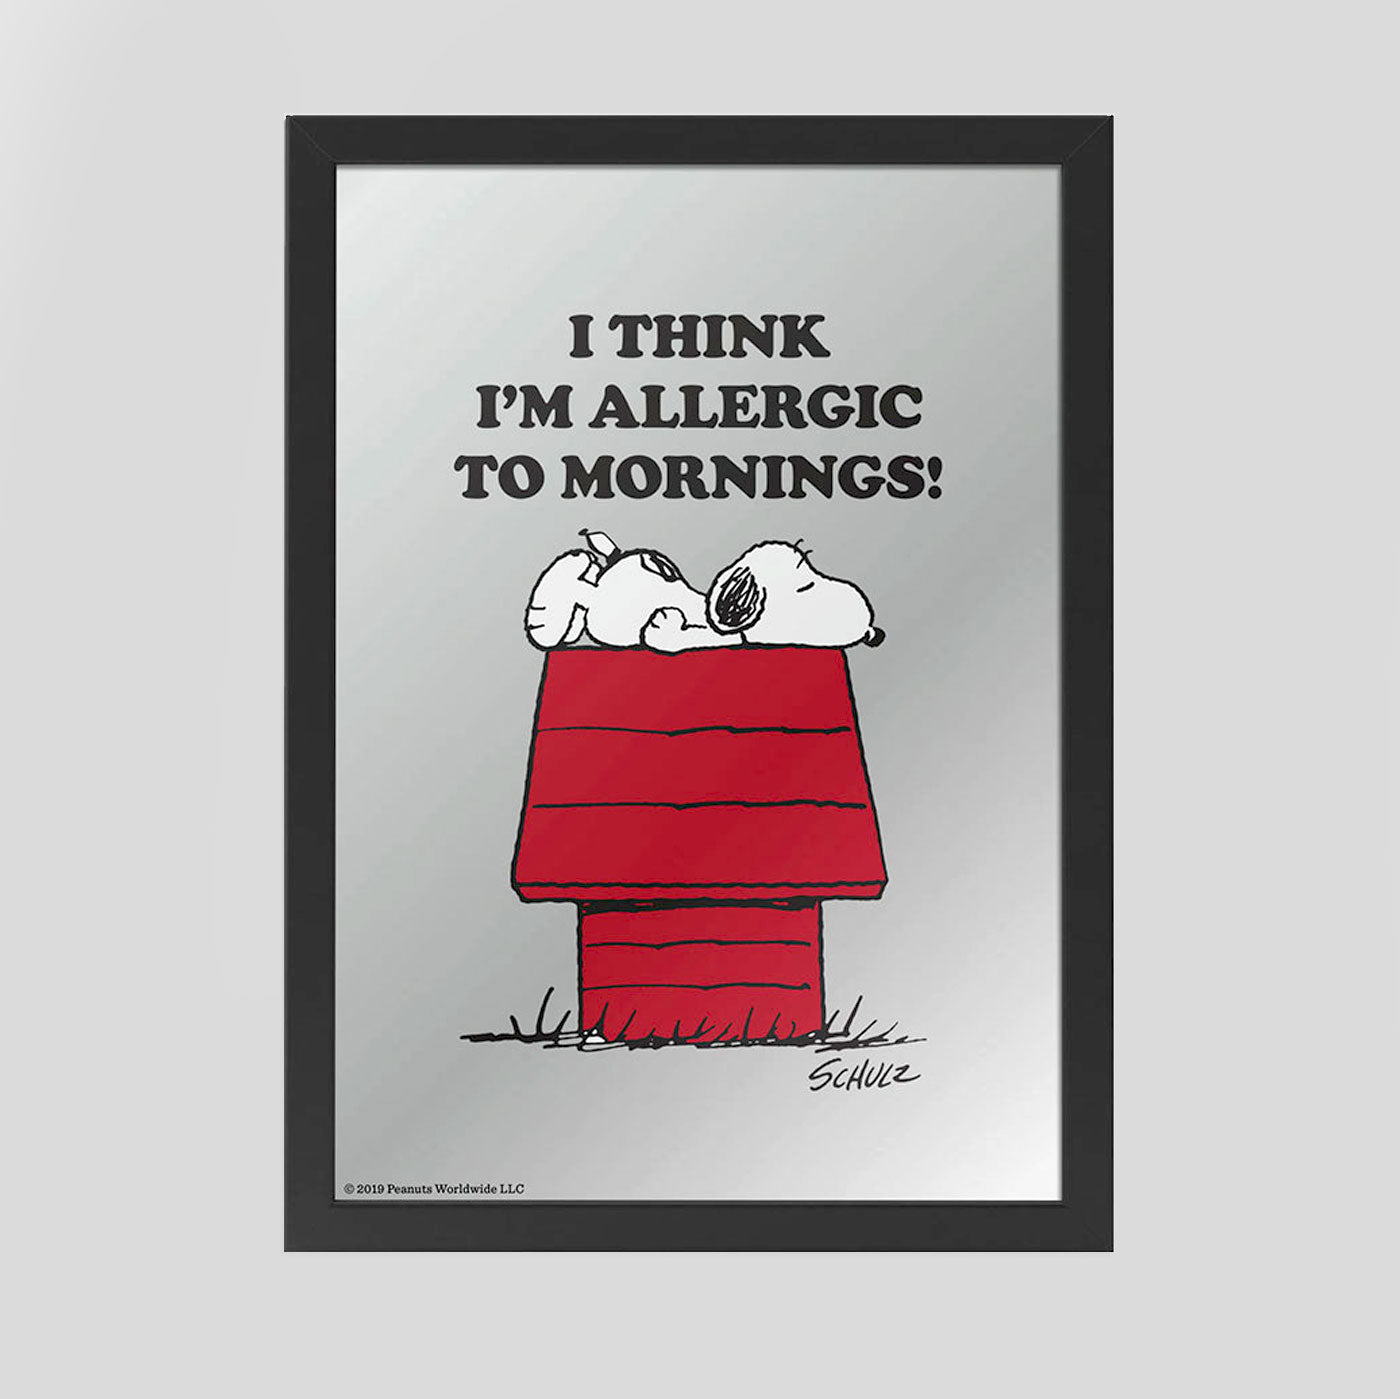 Peanuts Mirror - I Think I'm Allergic To Mornings